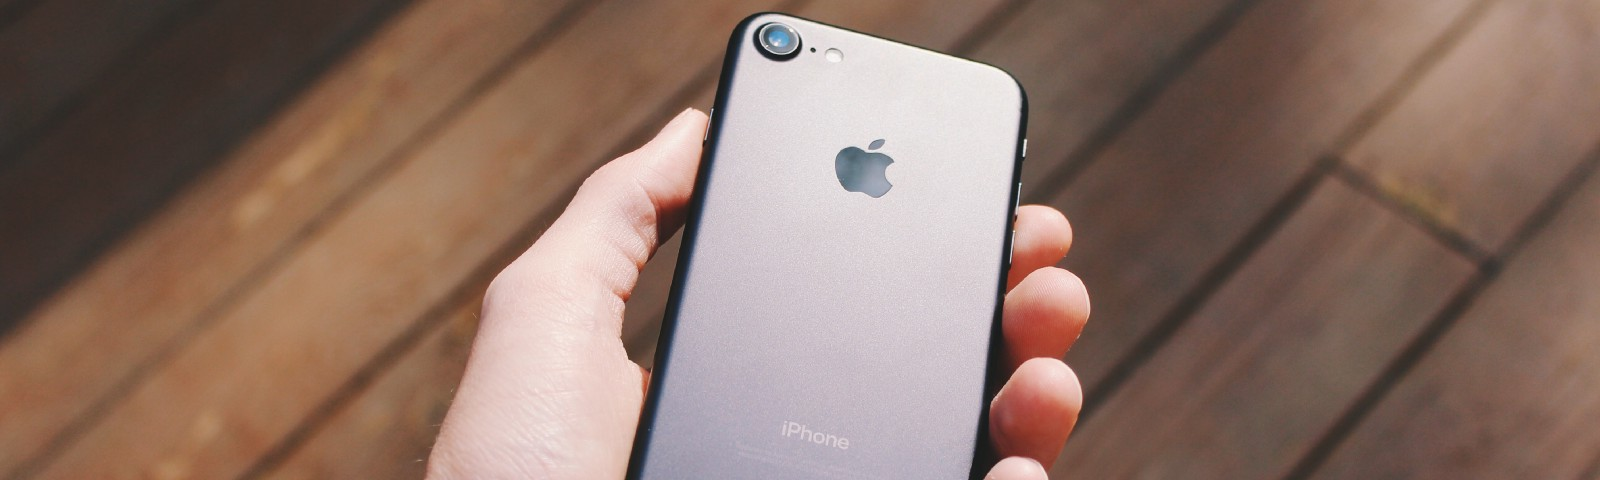 A hand holding an iPhone 6 (its back faces the camera)